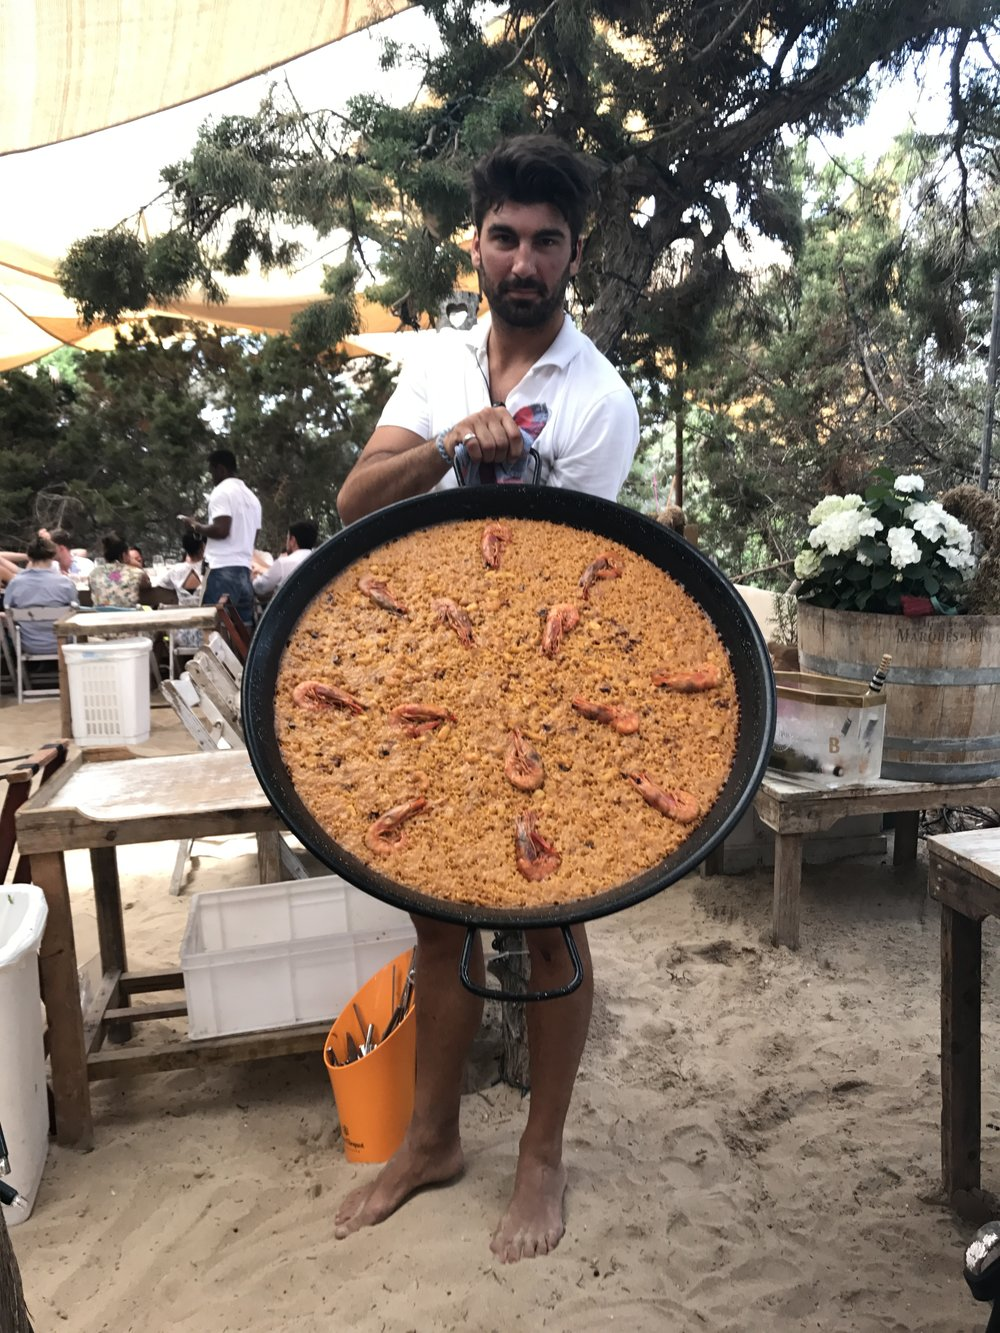 Delicious paella lunch on the beach in Spain